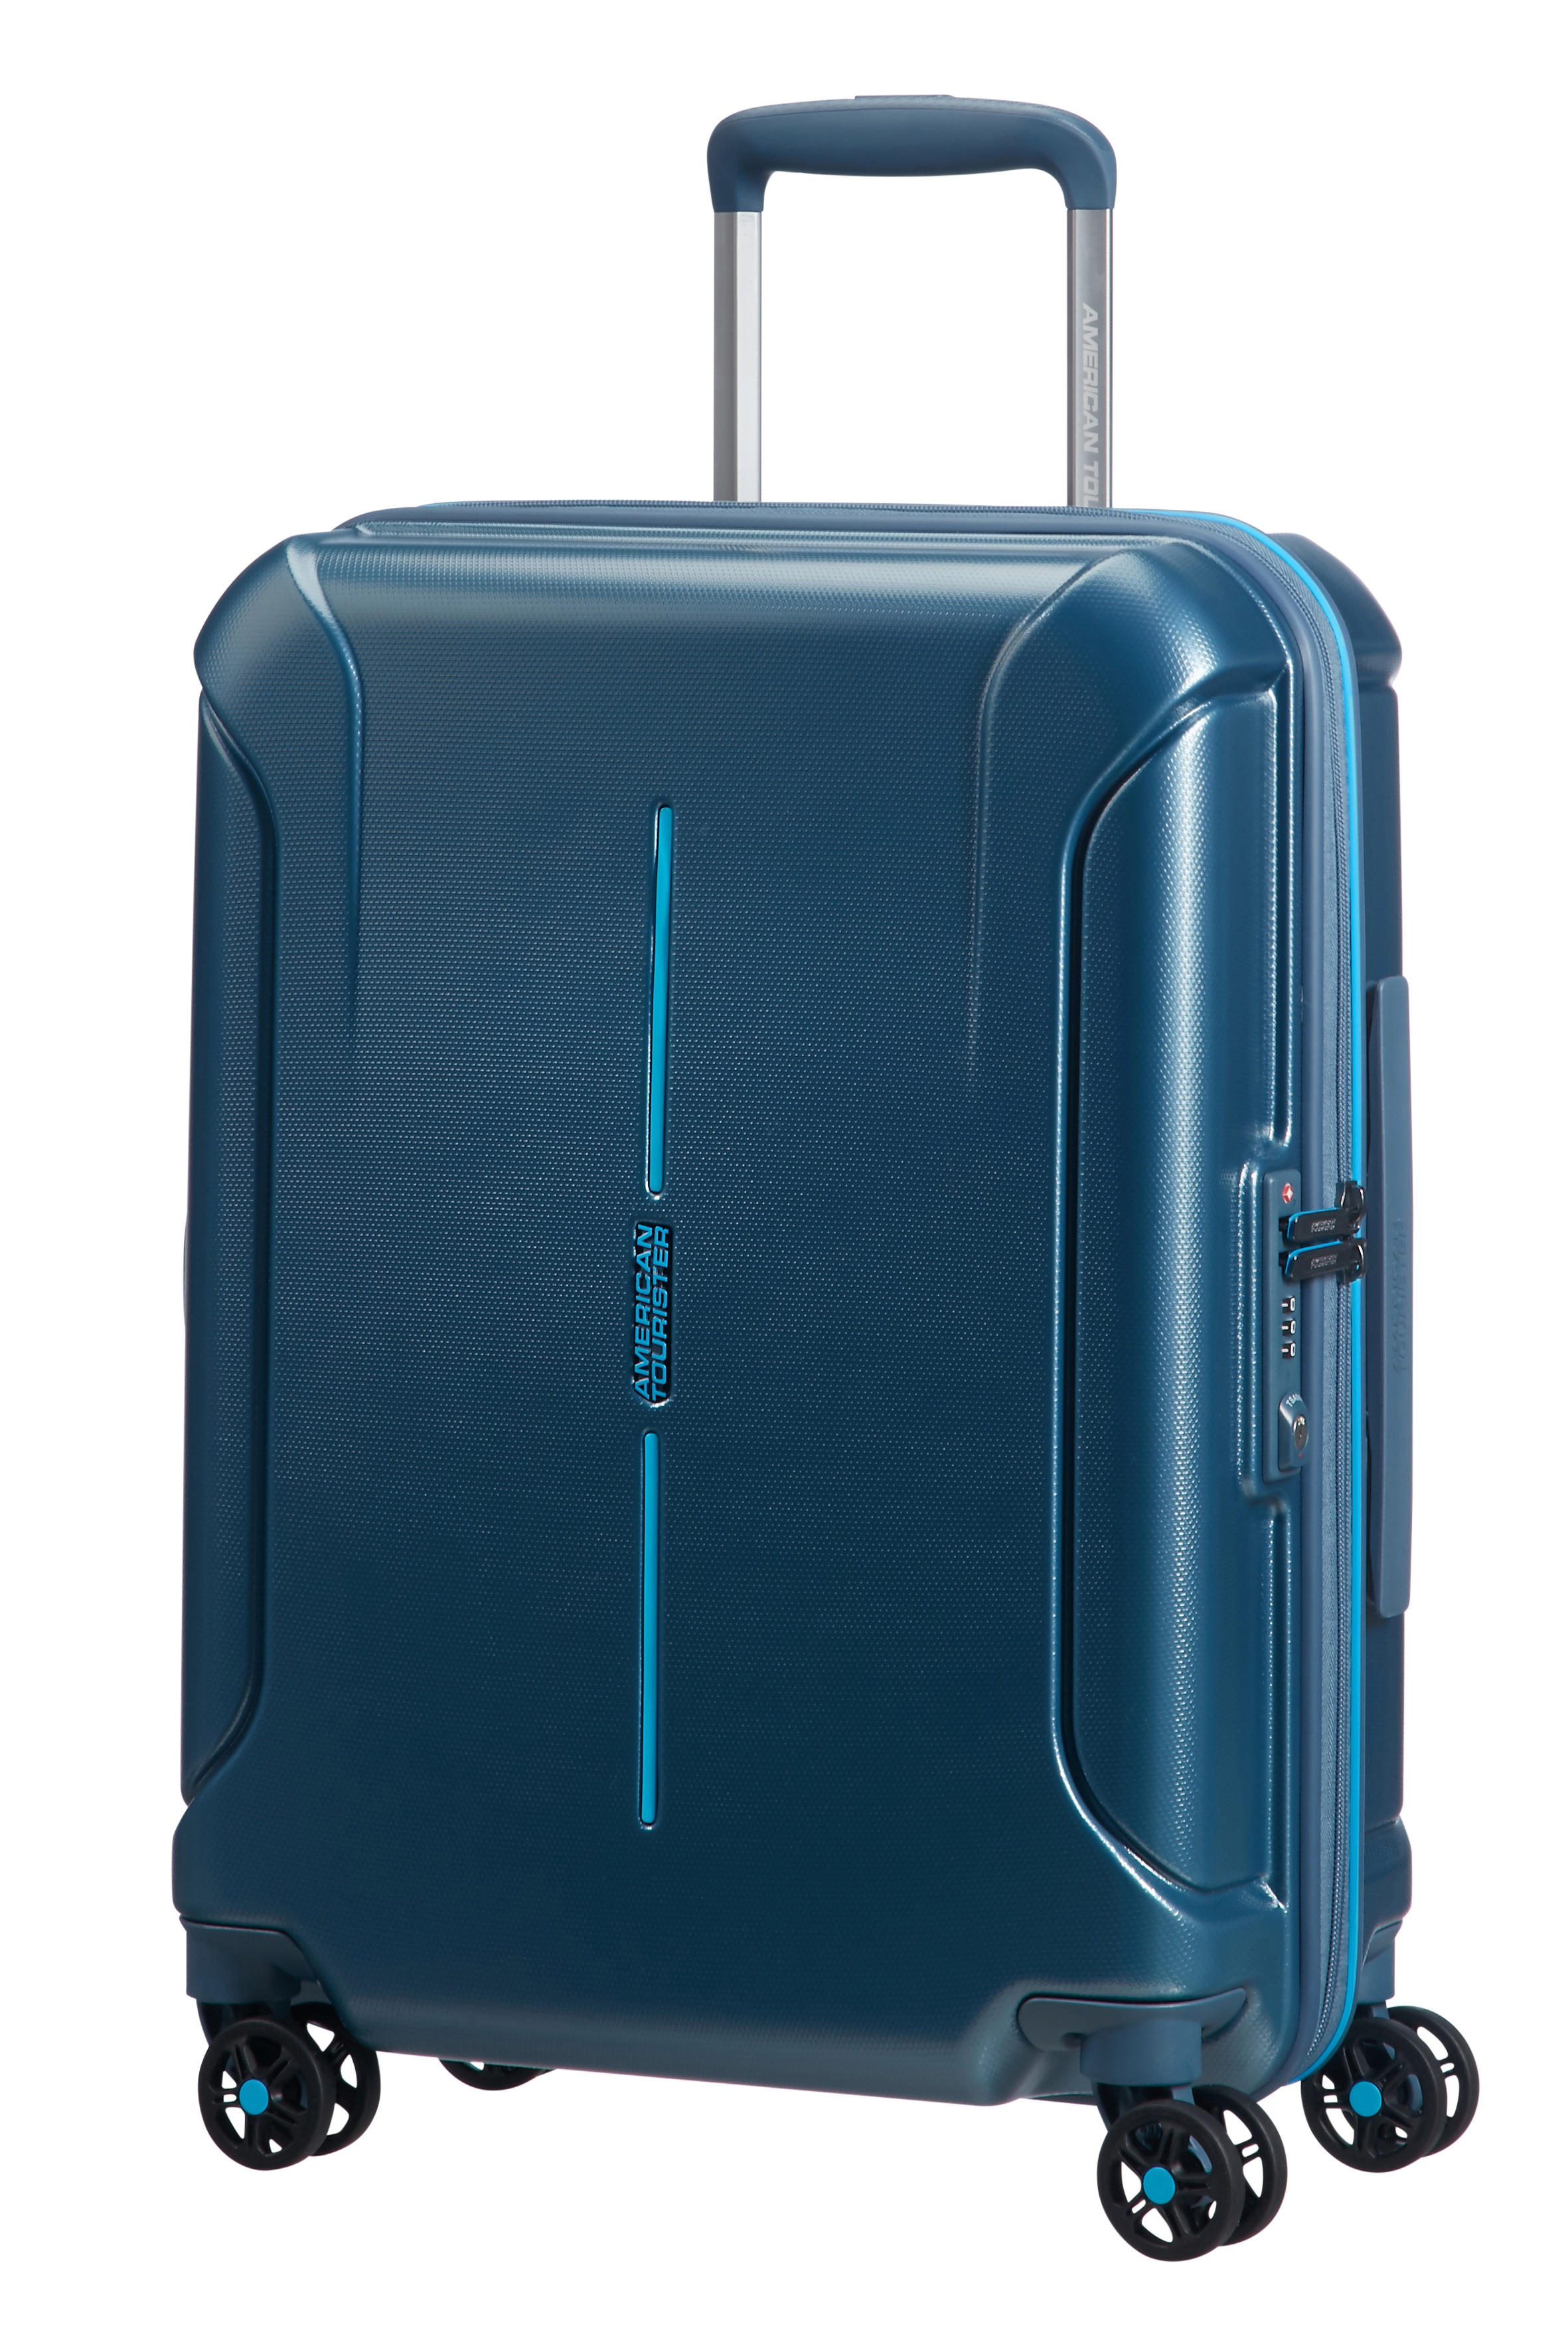 American Tourister Technum Hardside Carry On Spinner Luggage